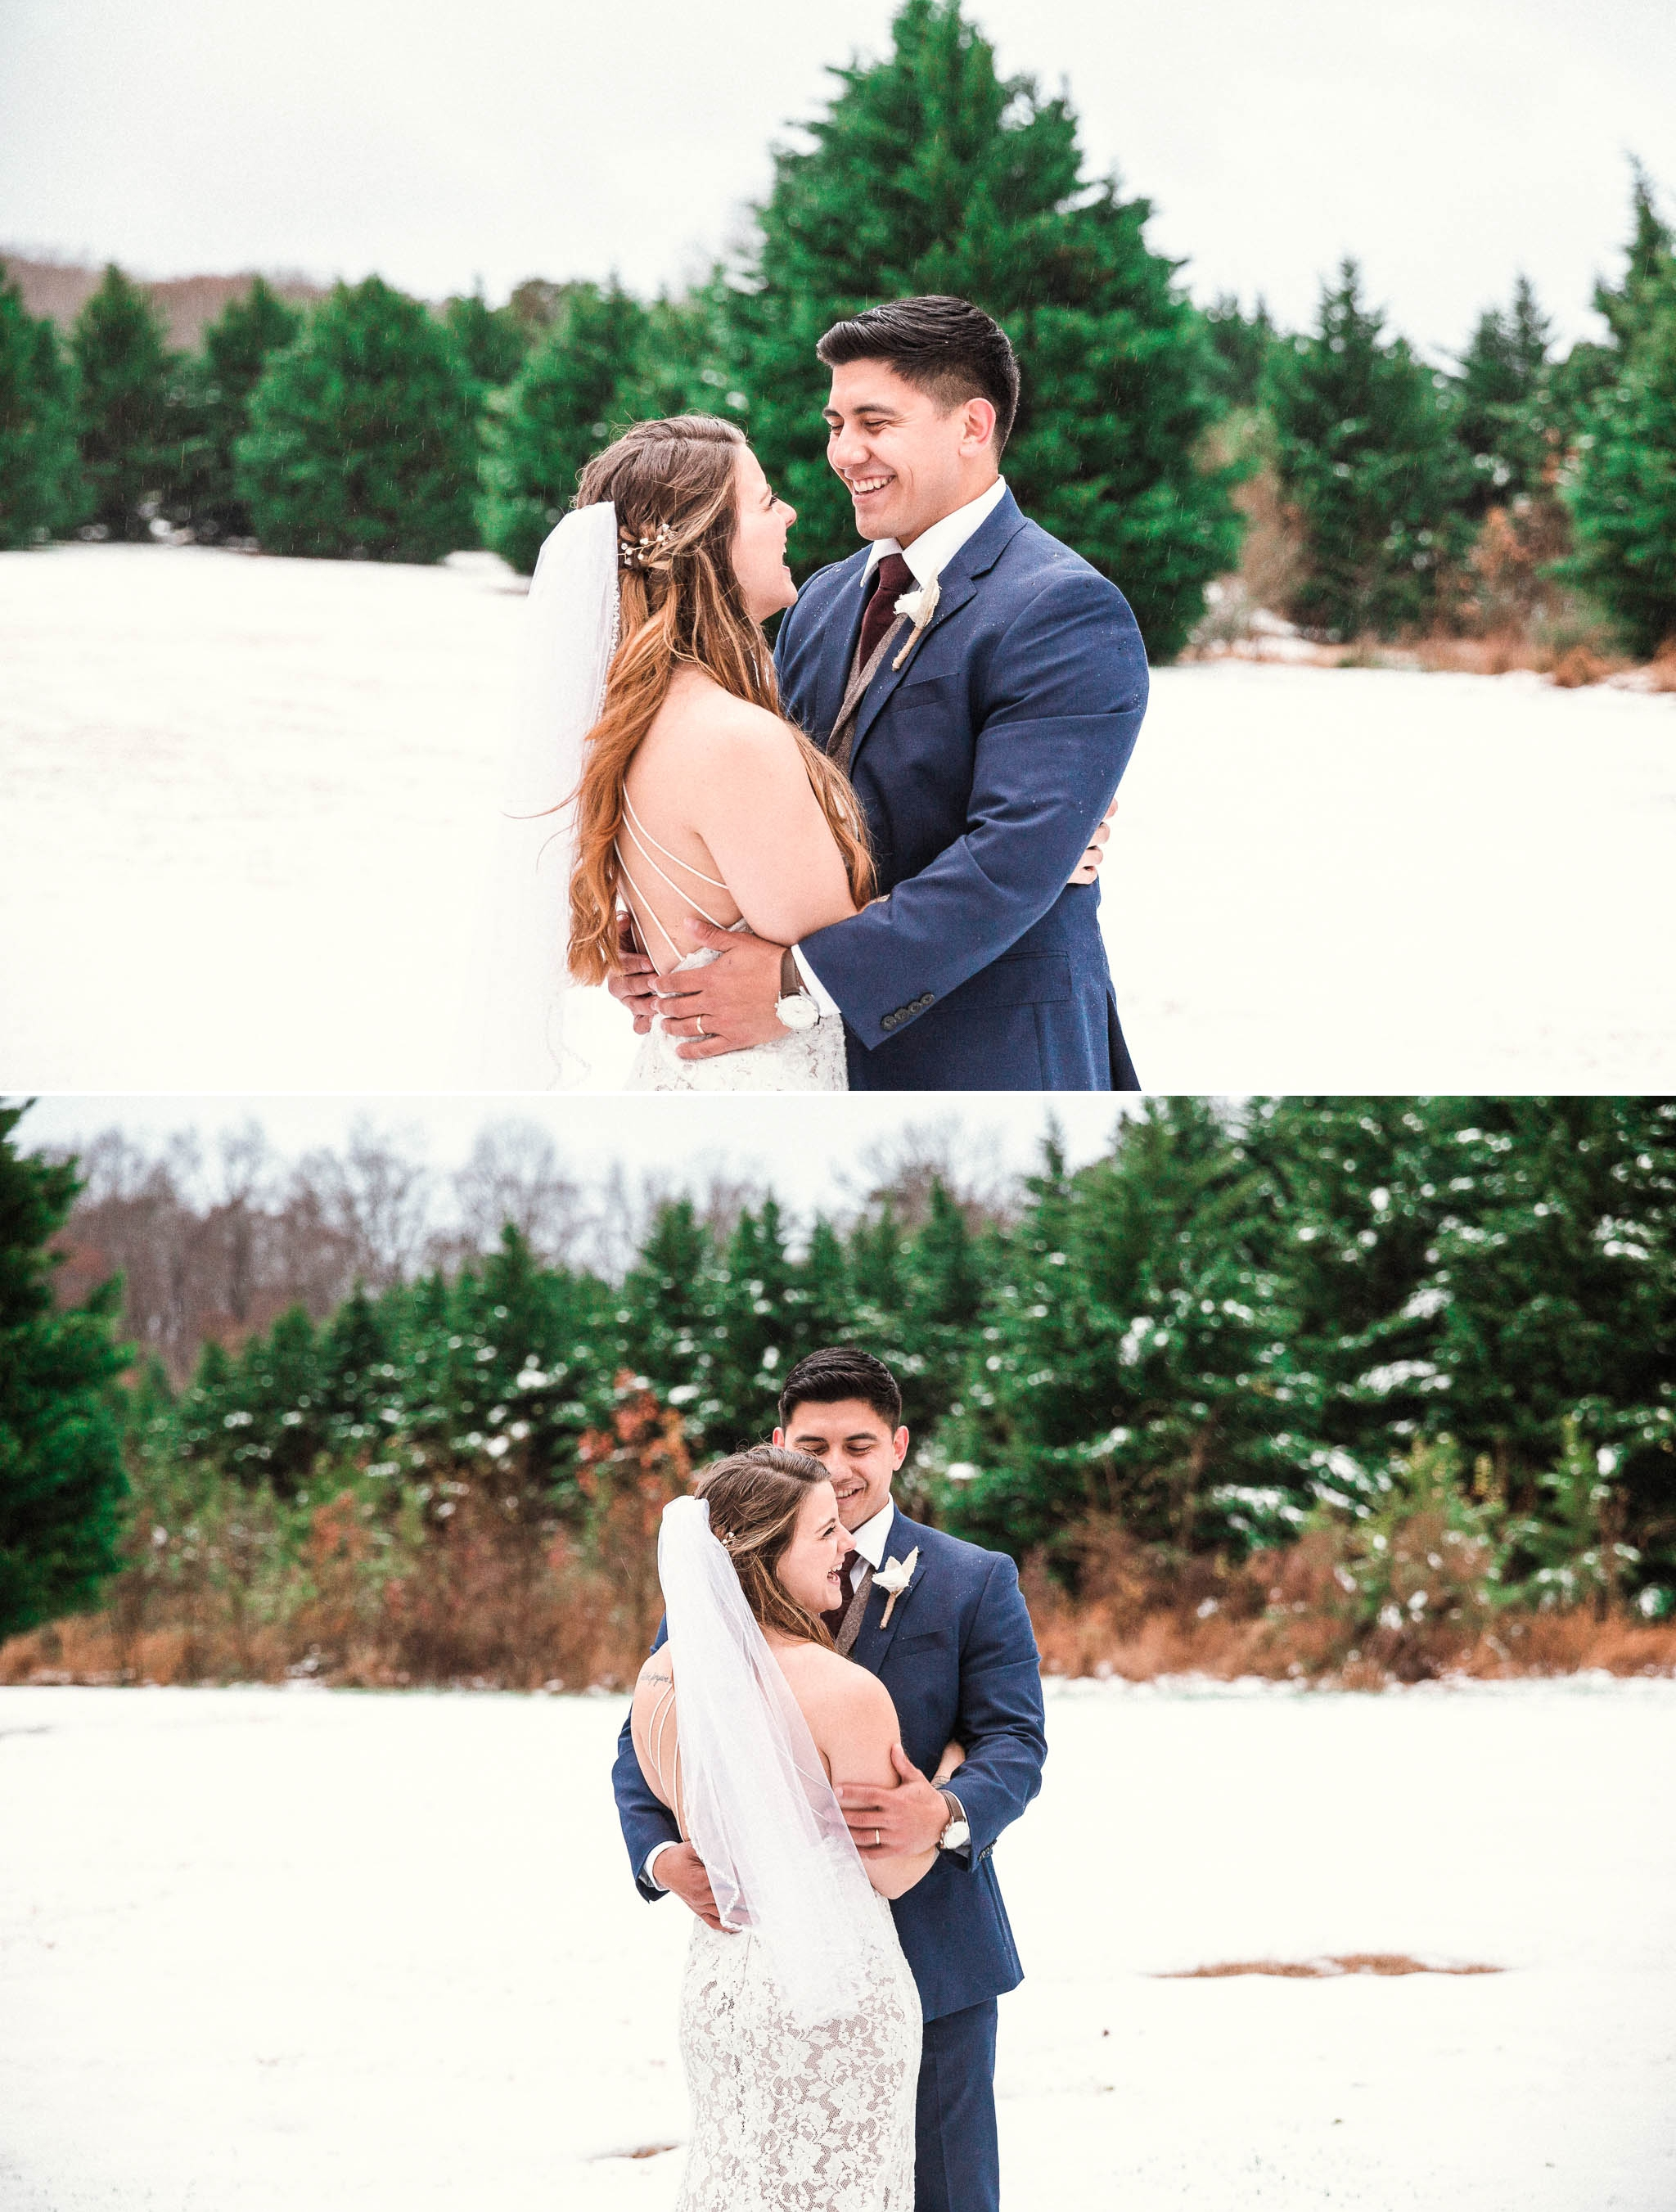 Portraits between bride and groom in the snow - Jessica + Brandon - Snowy Winter Wedding at the Rand Bryan House in Garner, NC - Raleigh North Carolina Wedding Photographer